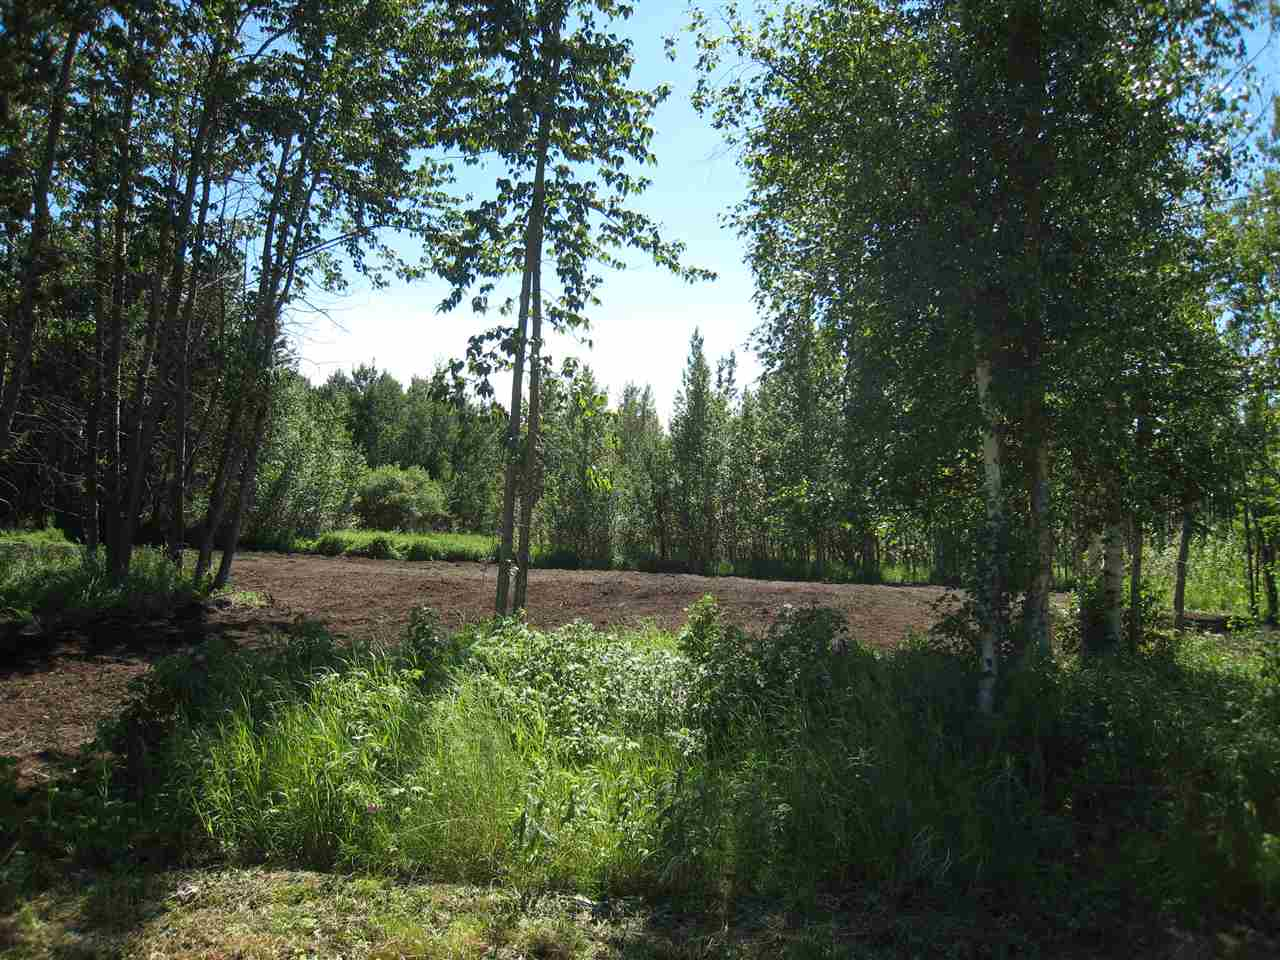 Ready to build your dream home on this almost 3 acre plot? (There are 3 to choose from). It is only 3 miles (5 kms) to Westlock. MUNICIPAL WATER, Natural gas and Power ARE ALL AT THE DRIVEWAY and you just bring it onto your lot where you want your home! This acreage is big enough for animals (barn), a shop, and plenty of kids!! Trees are scattered throughout to offer privacy and pleasure!! A machine has mulched and created clearings among the trees but the Sellers will clear more at no cost if desired. There are architectural controls in place. There is also Lot 7 which is over 18 acres and beautifully treed (make an offer).  The photos are  various ones of the lots that are for sale.. GST applies.